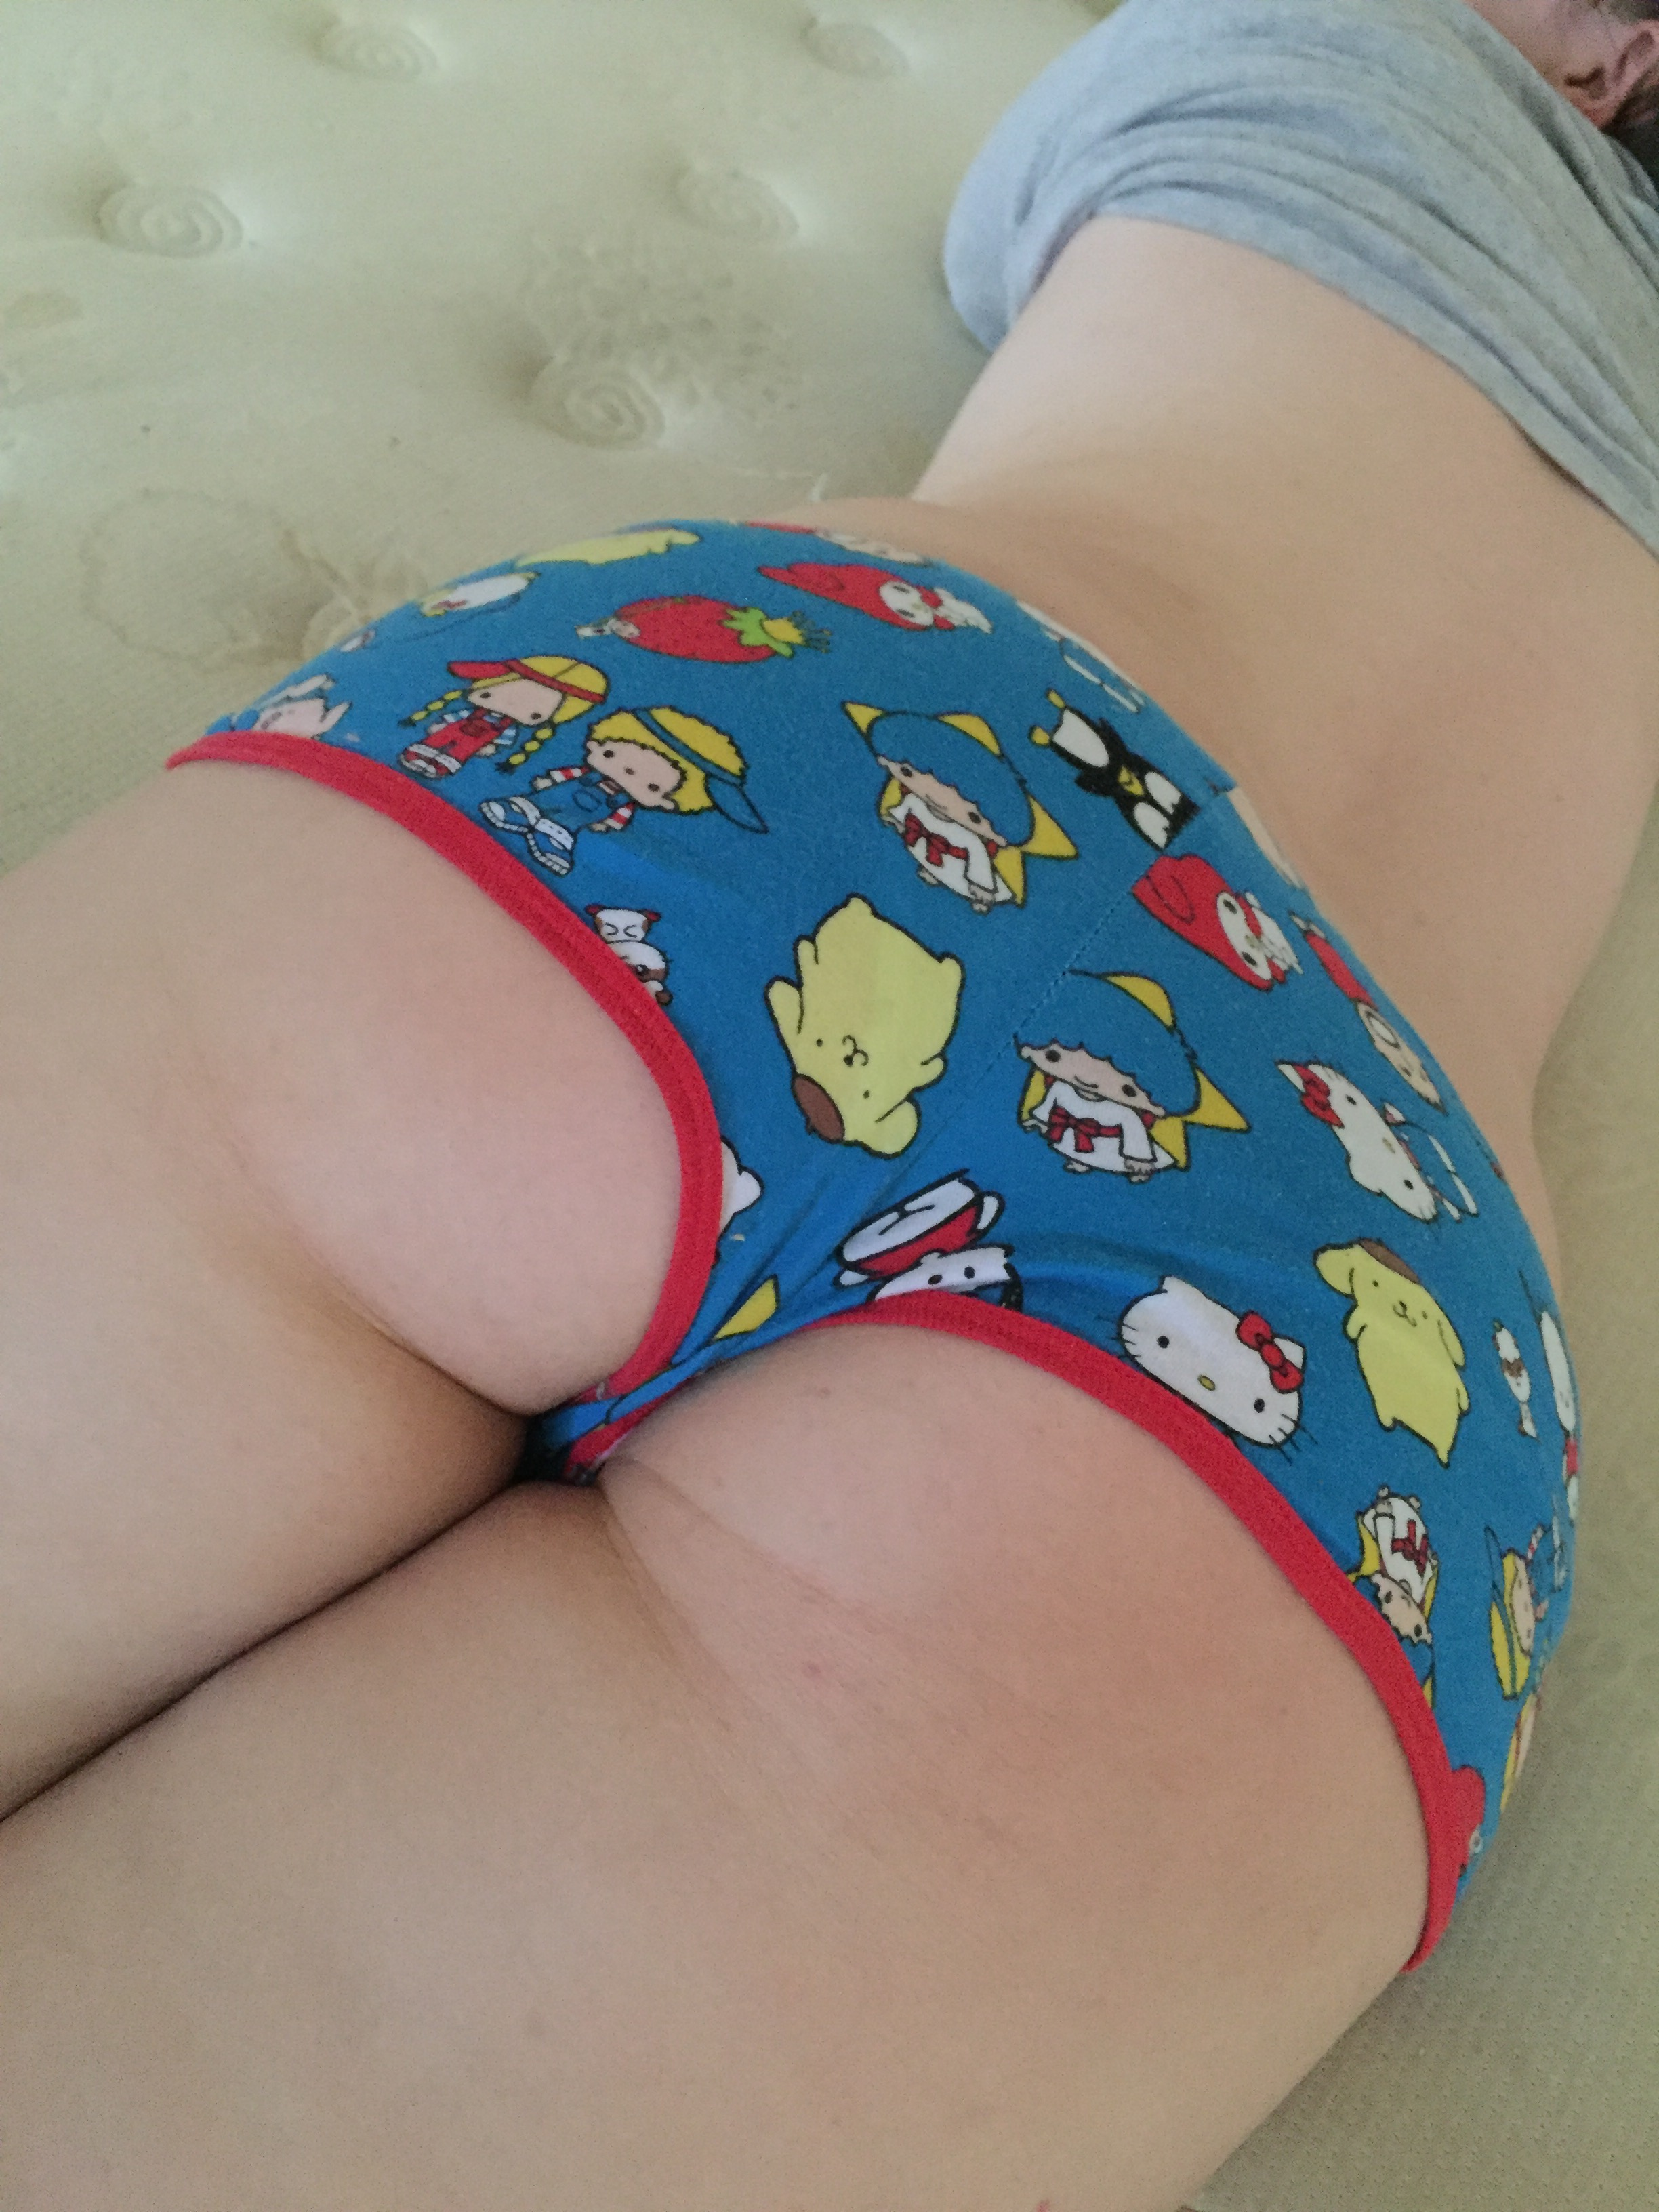 spanking butts